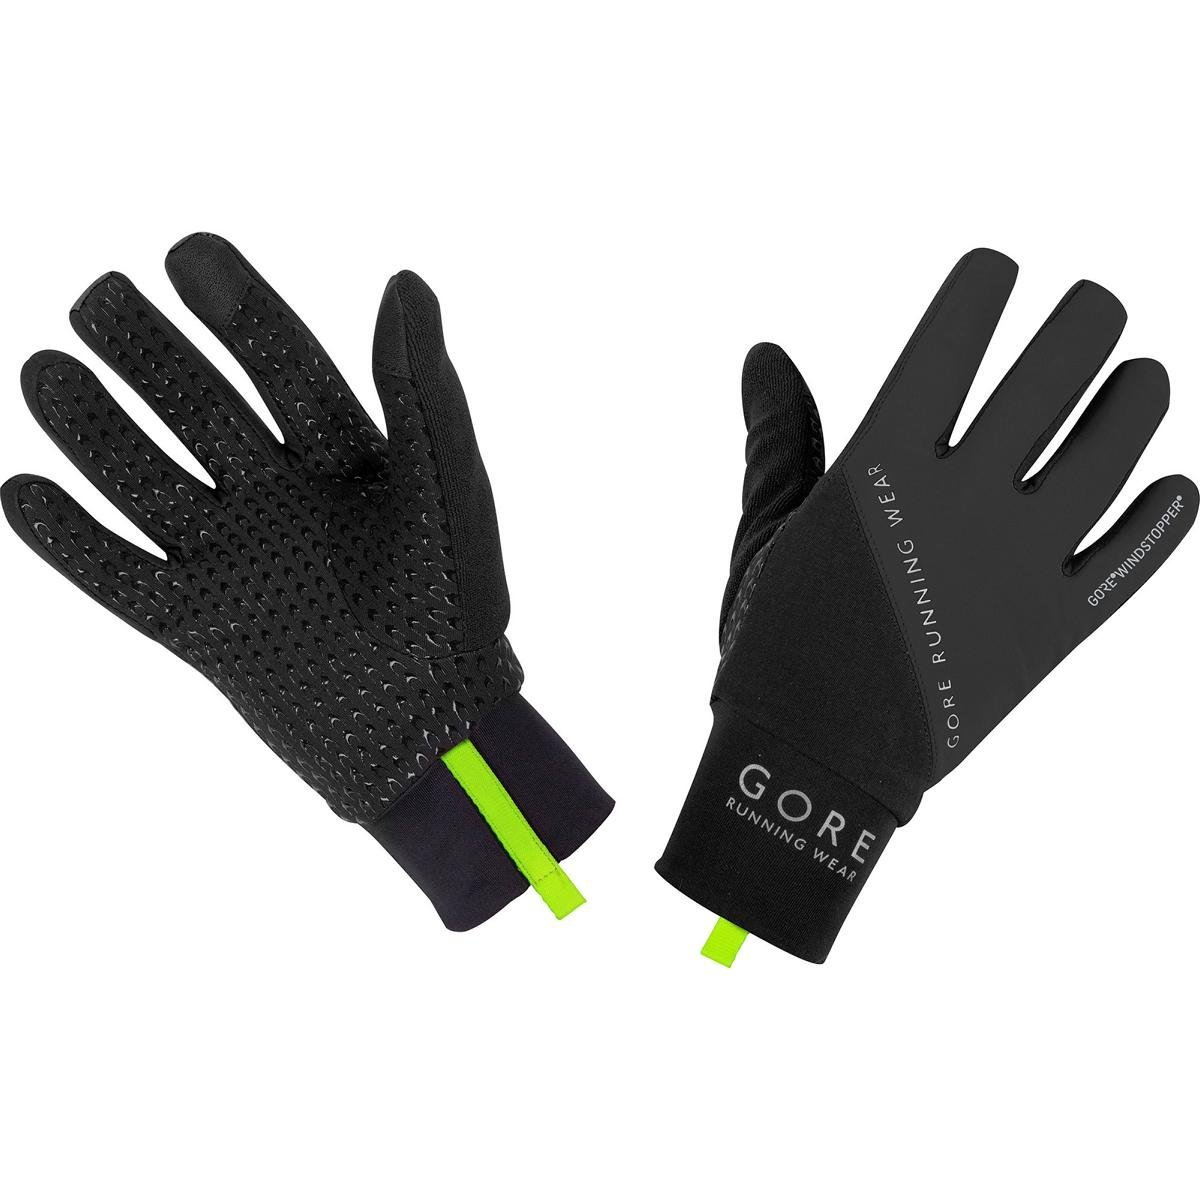 GORE RUNNING WEAR Homme Gants de courses, chauds, Coupe-vent, GORE WINDSTOPPER, FUSION, GWULTR